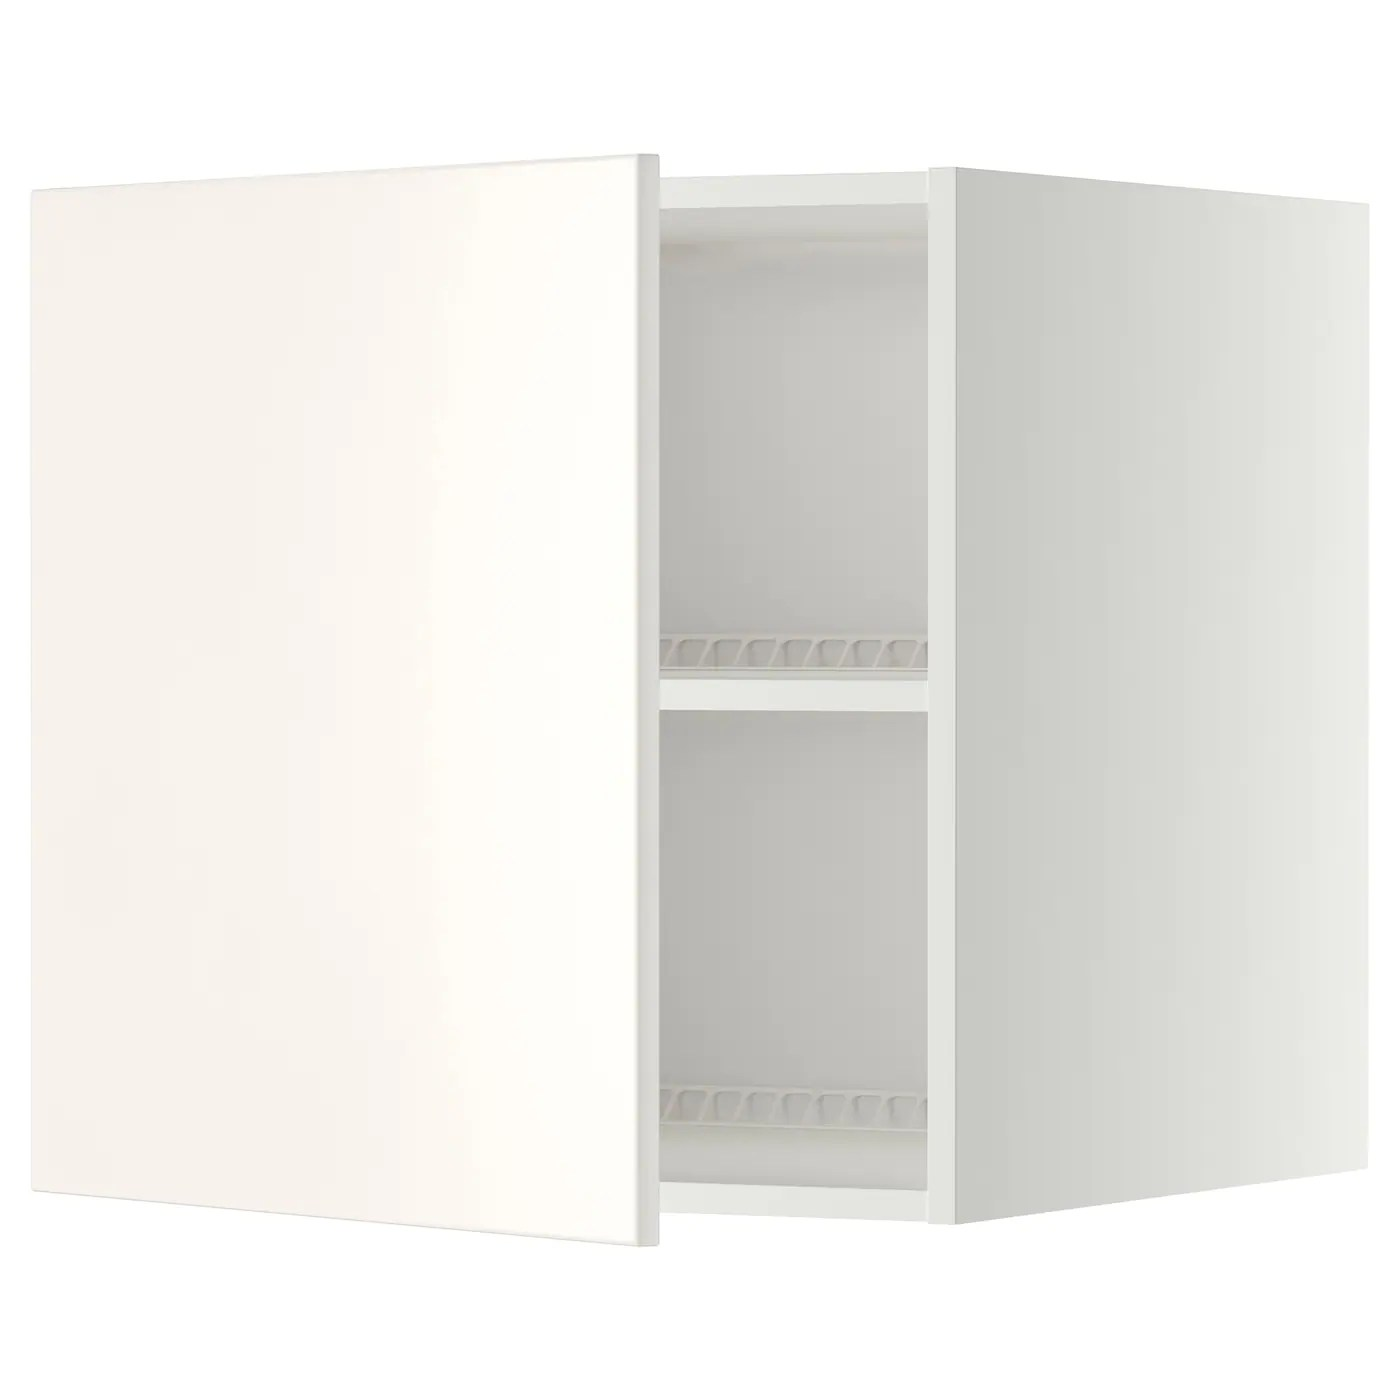 Ikea Küchenschrank Veddinge Metod Top Cabinet To Fridge Freezer White Veddinge White